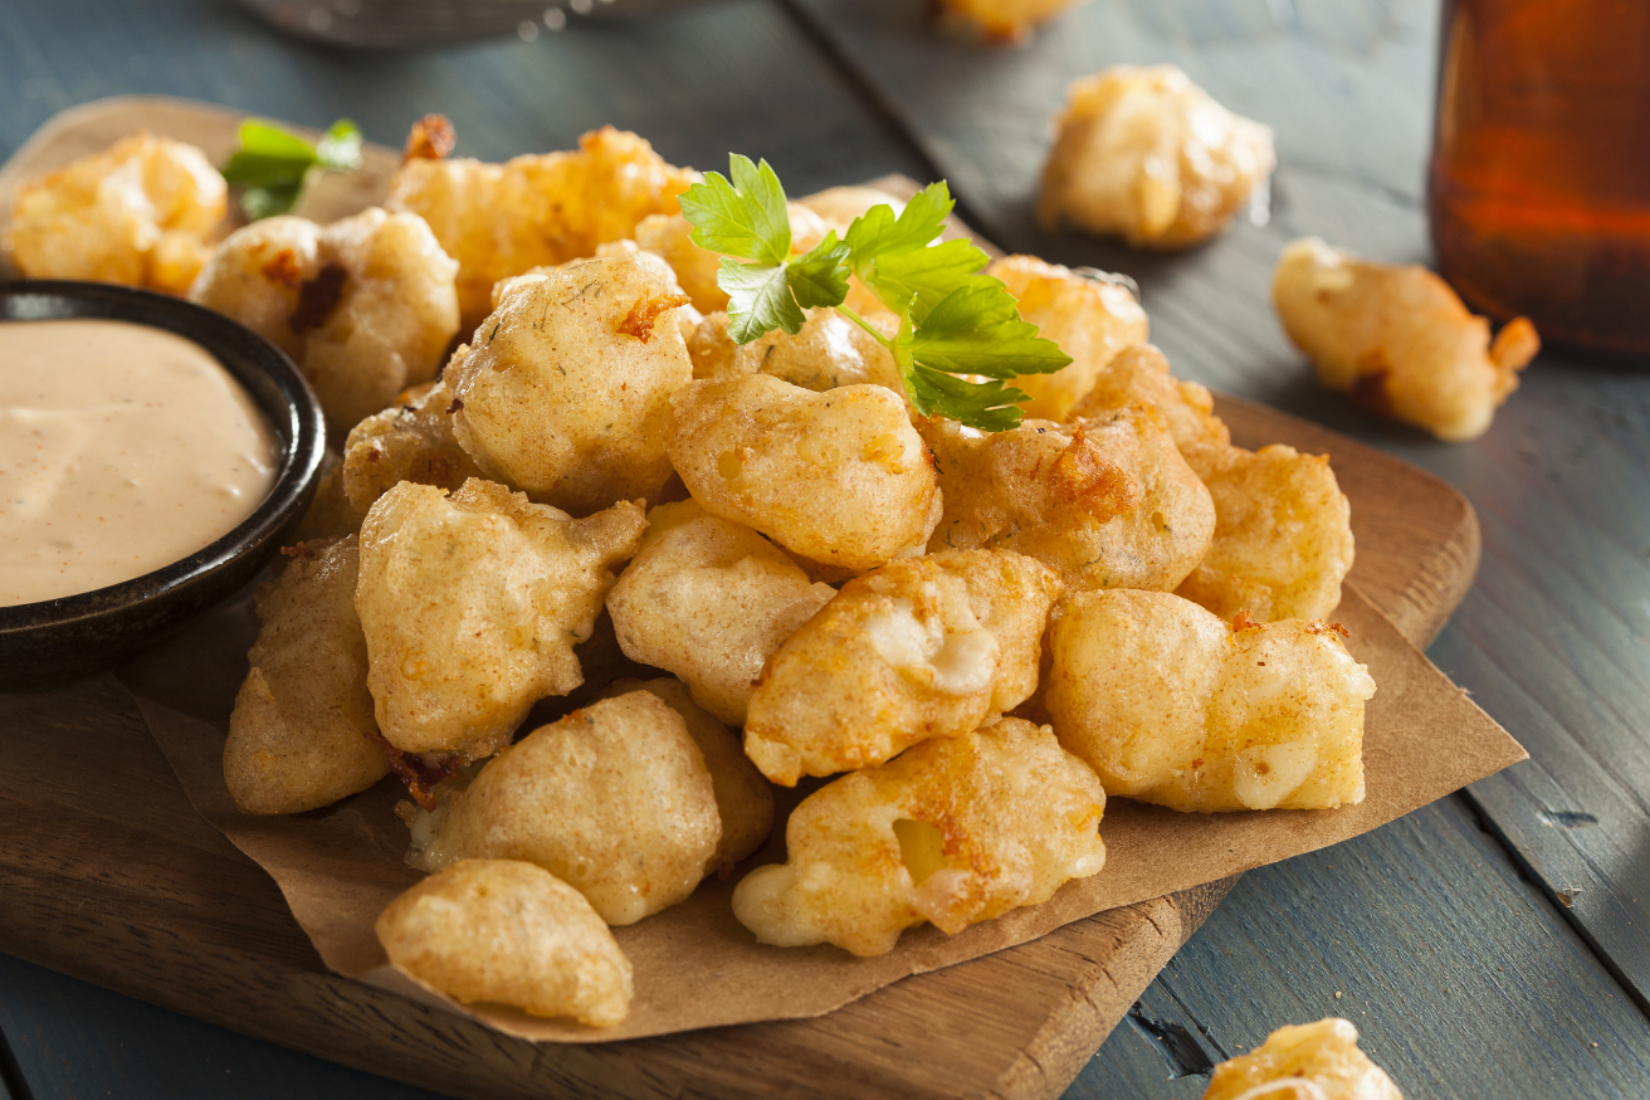 Entice White Cheddar Cheese Curds